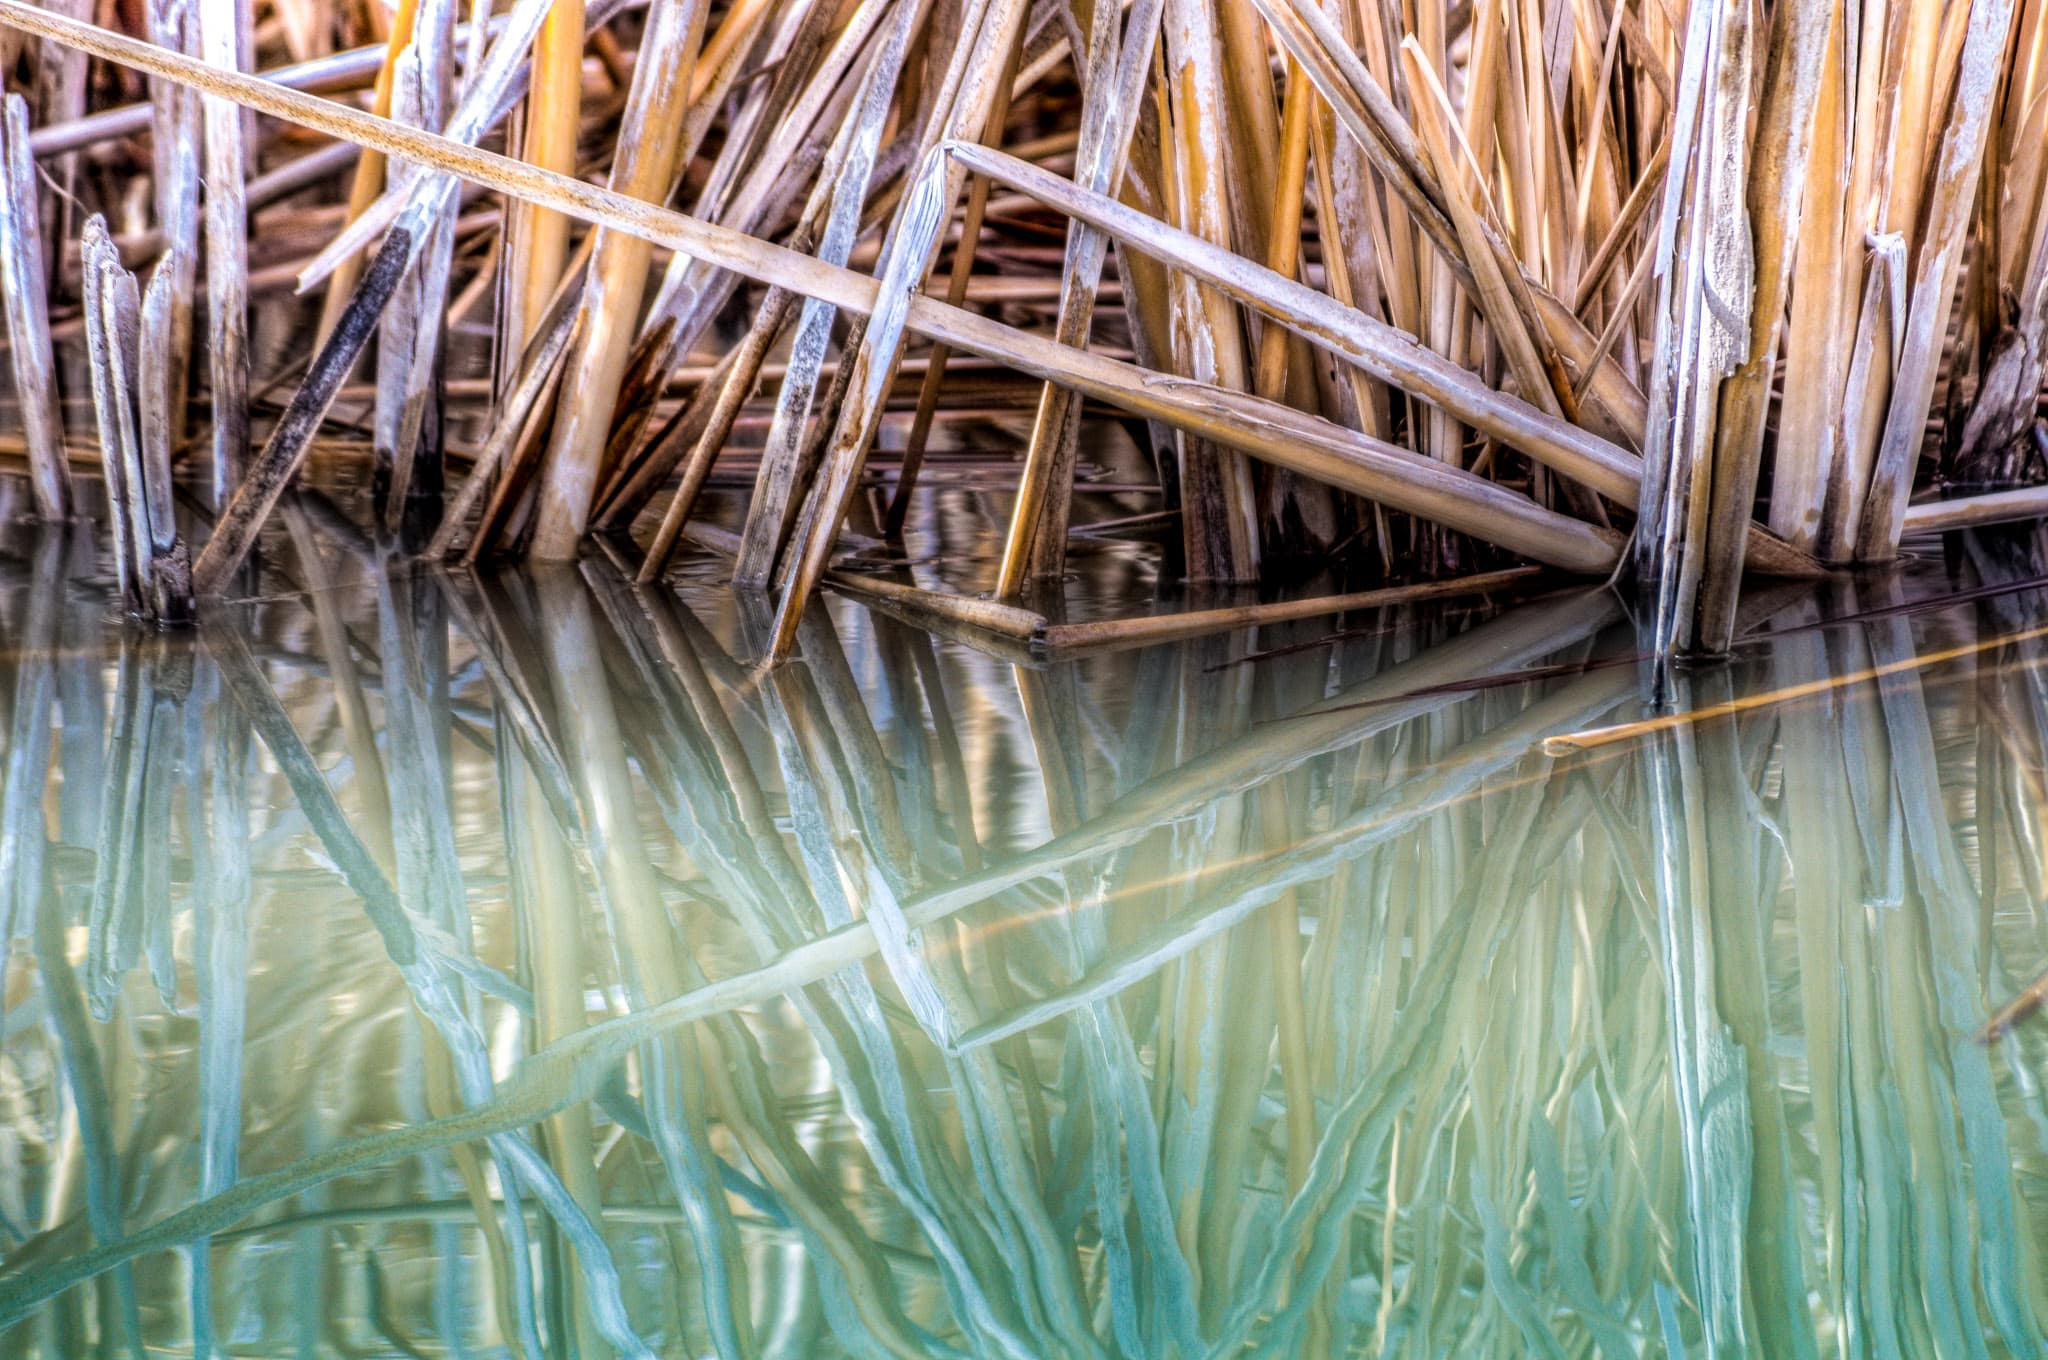 A closeup of the shoreline of one of the ponds in Bosque del Apache Wildlife Refuge showing shore grasses reflected in the water.